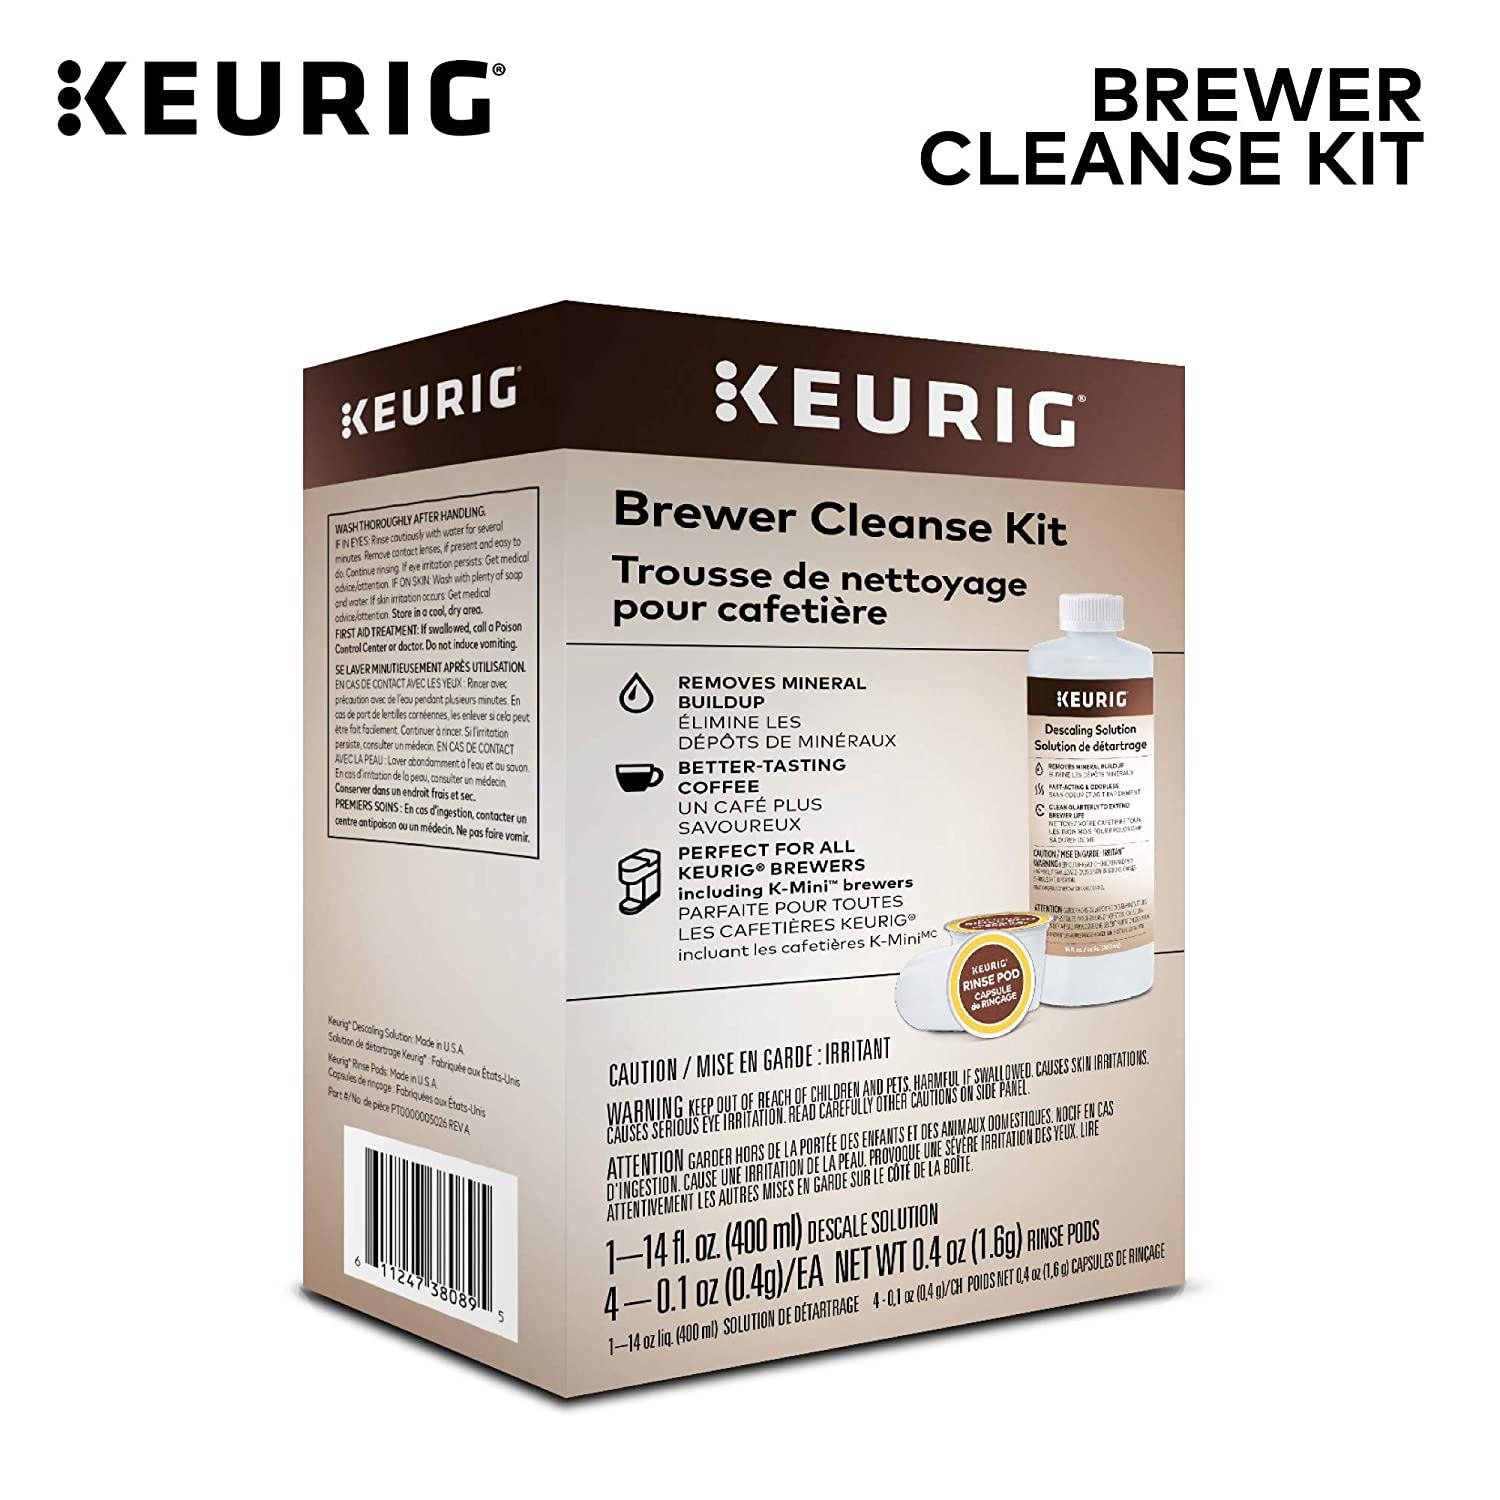 Keurig Brewer Cleanse Kit, Descaling and Maintenance Kit for Keurig Brewers - Includes 4 Keurig Rinse Pods and 1 Descale Solution